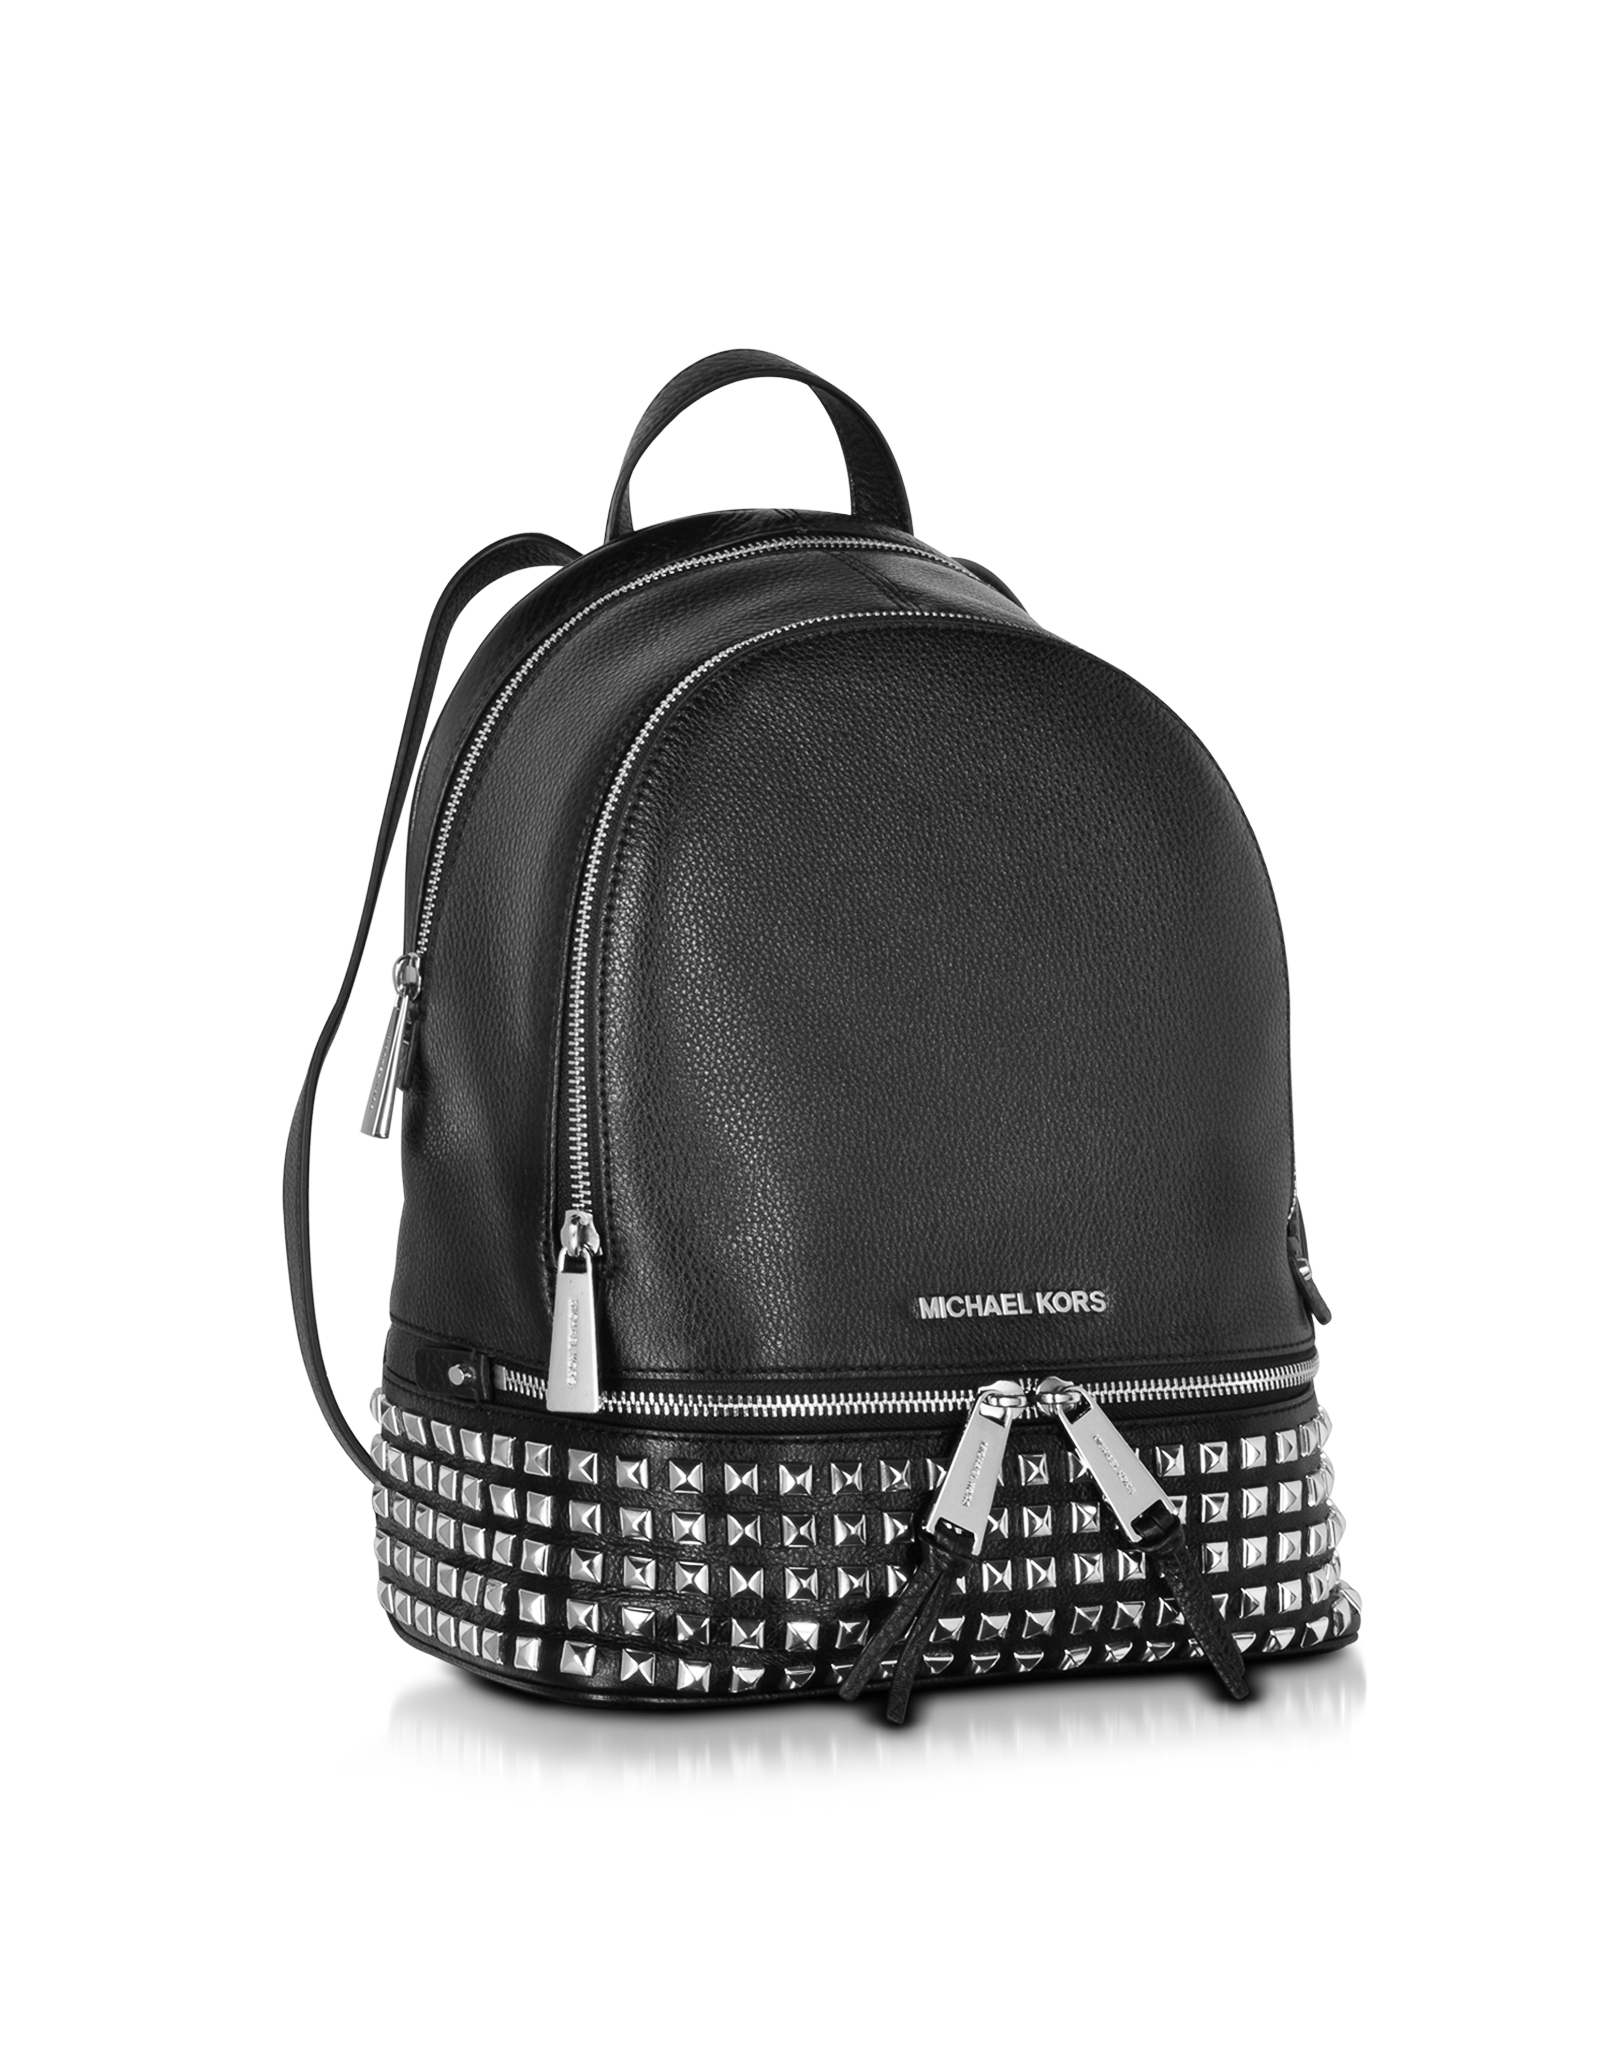 Michael kors Rhea Zip Small Studded Leather Backpack in Black | Lyst